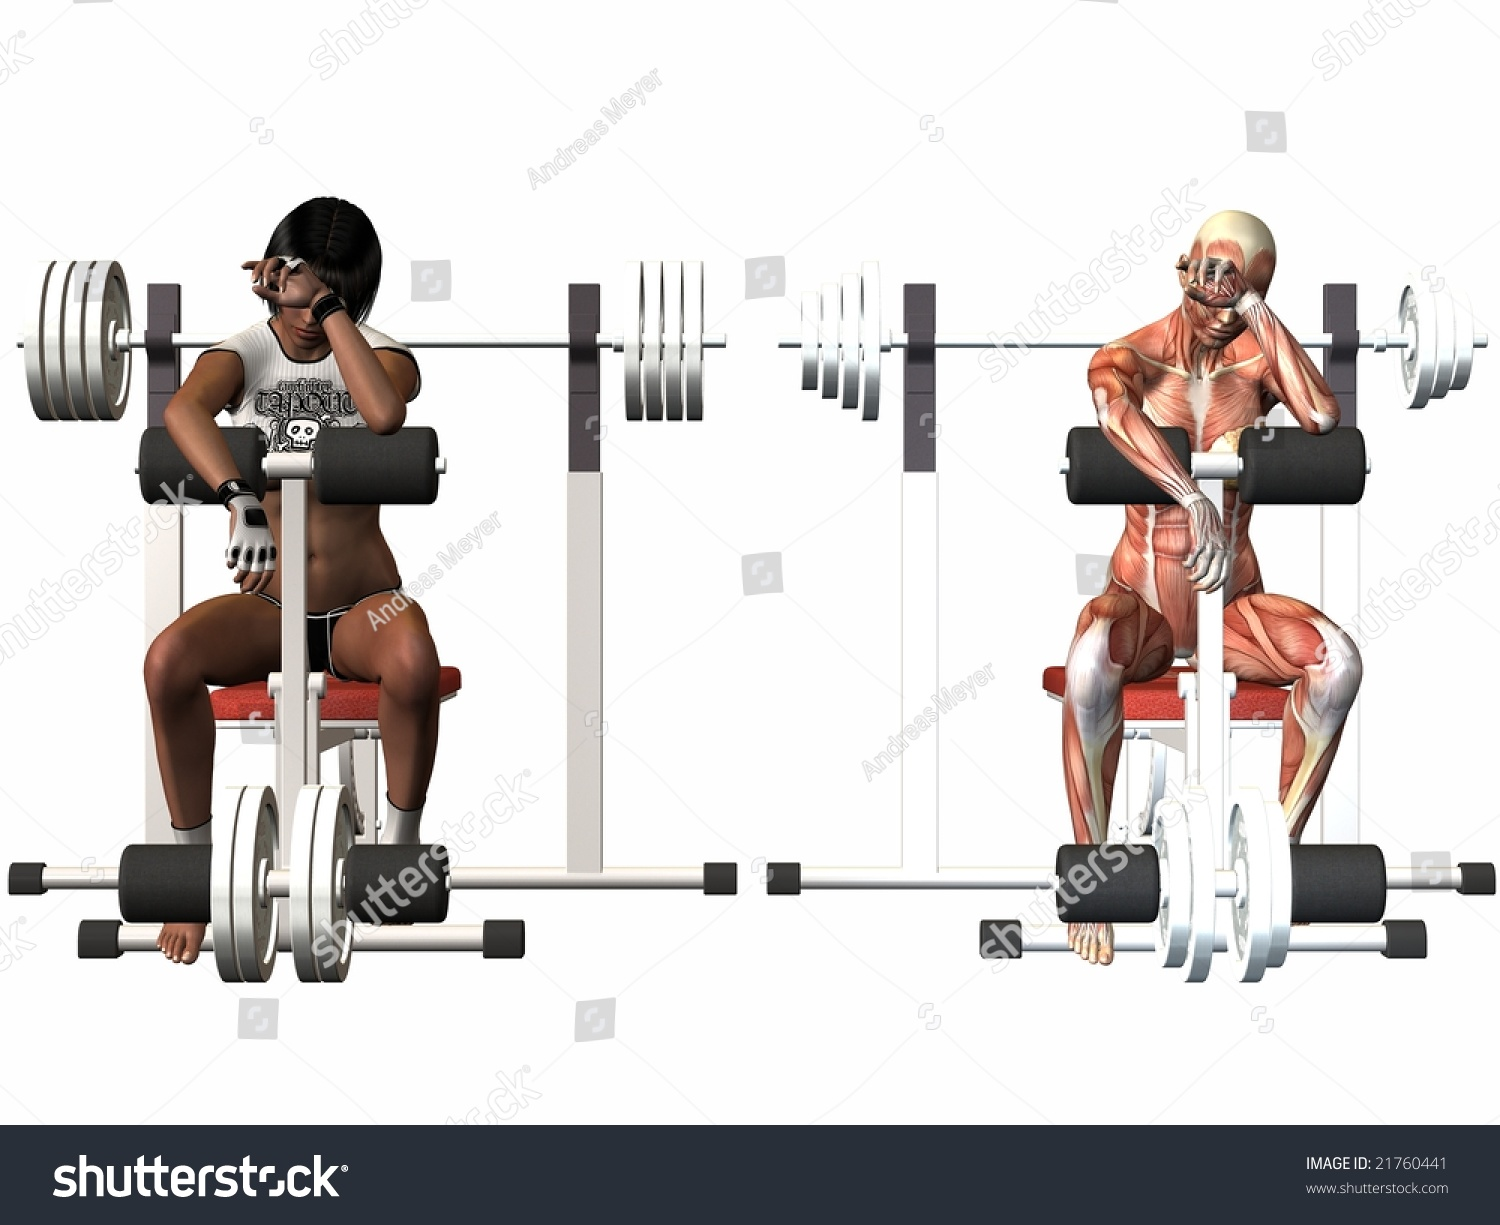 Female Human Body - Power Bench Stock Photo 21760441 ...